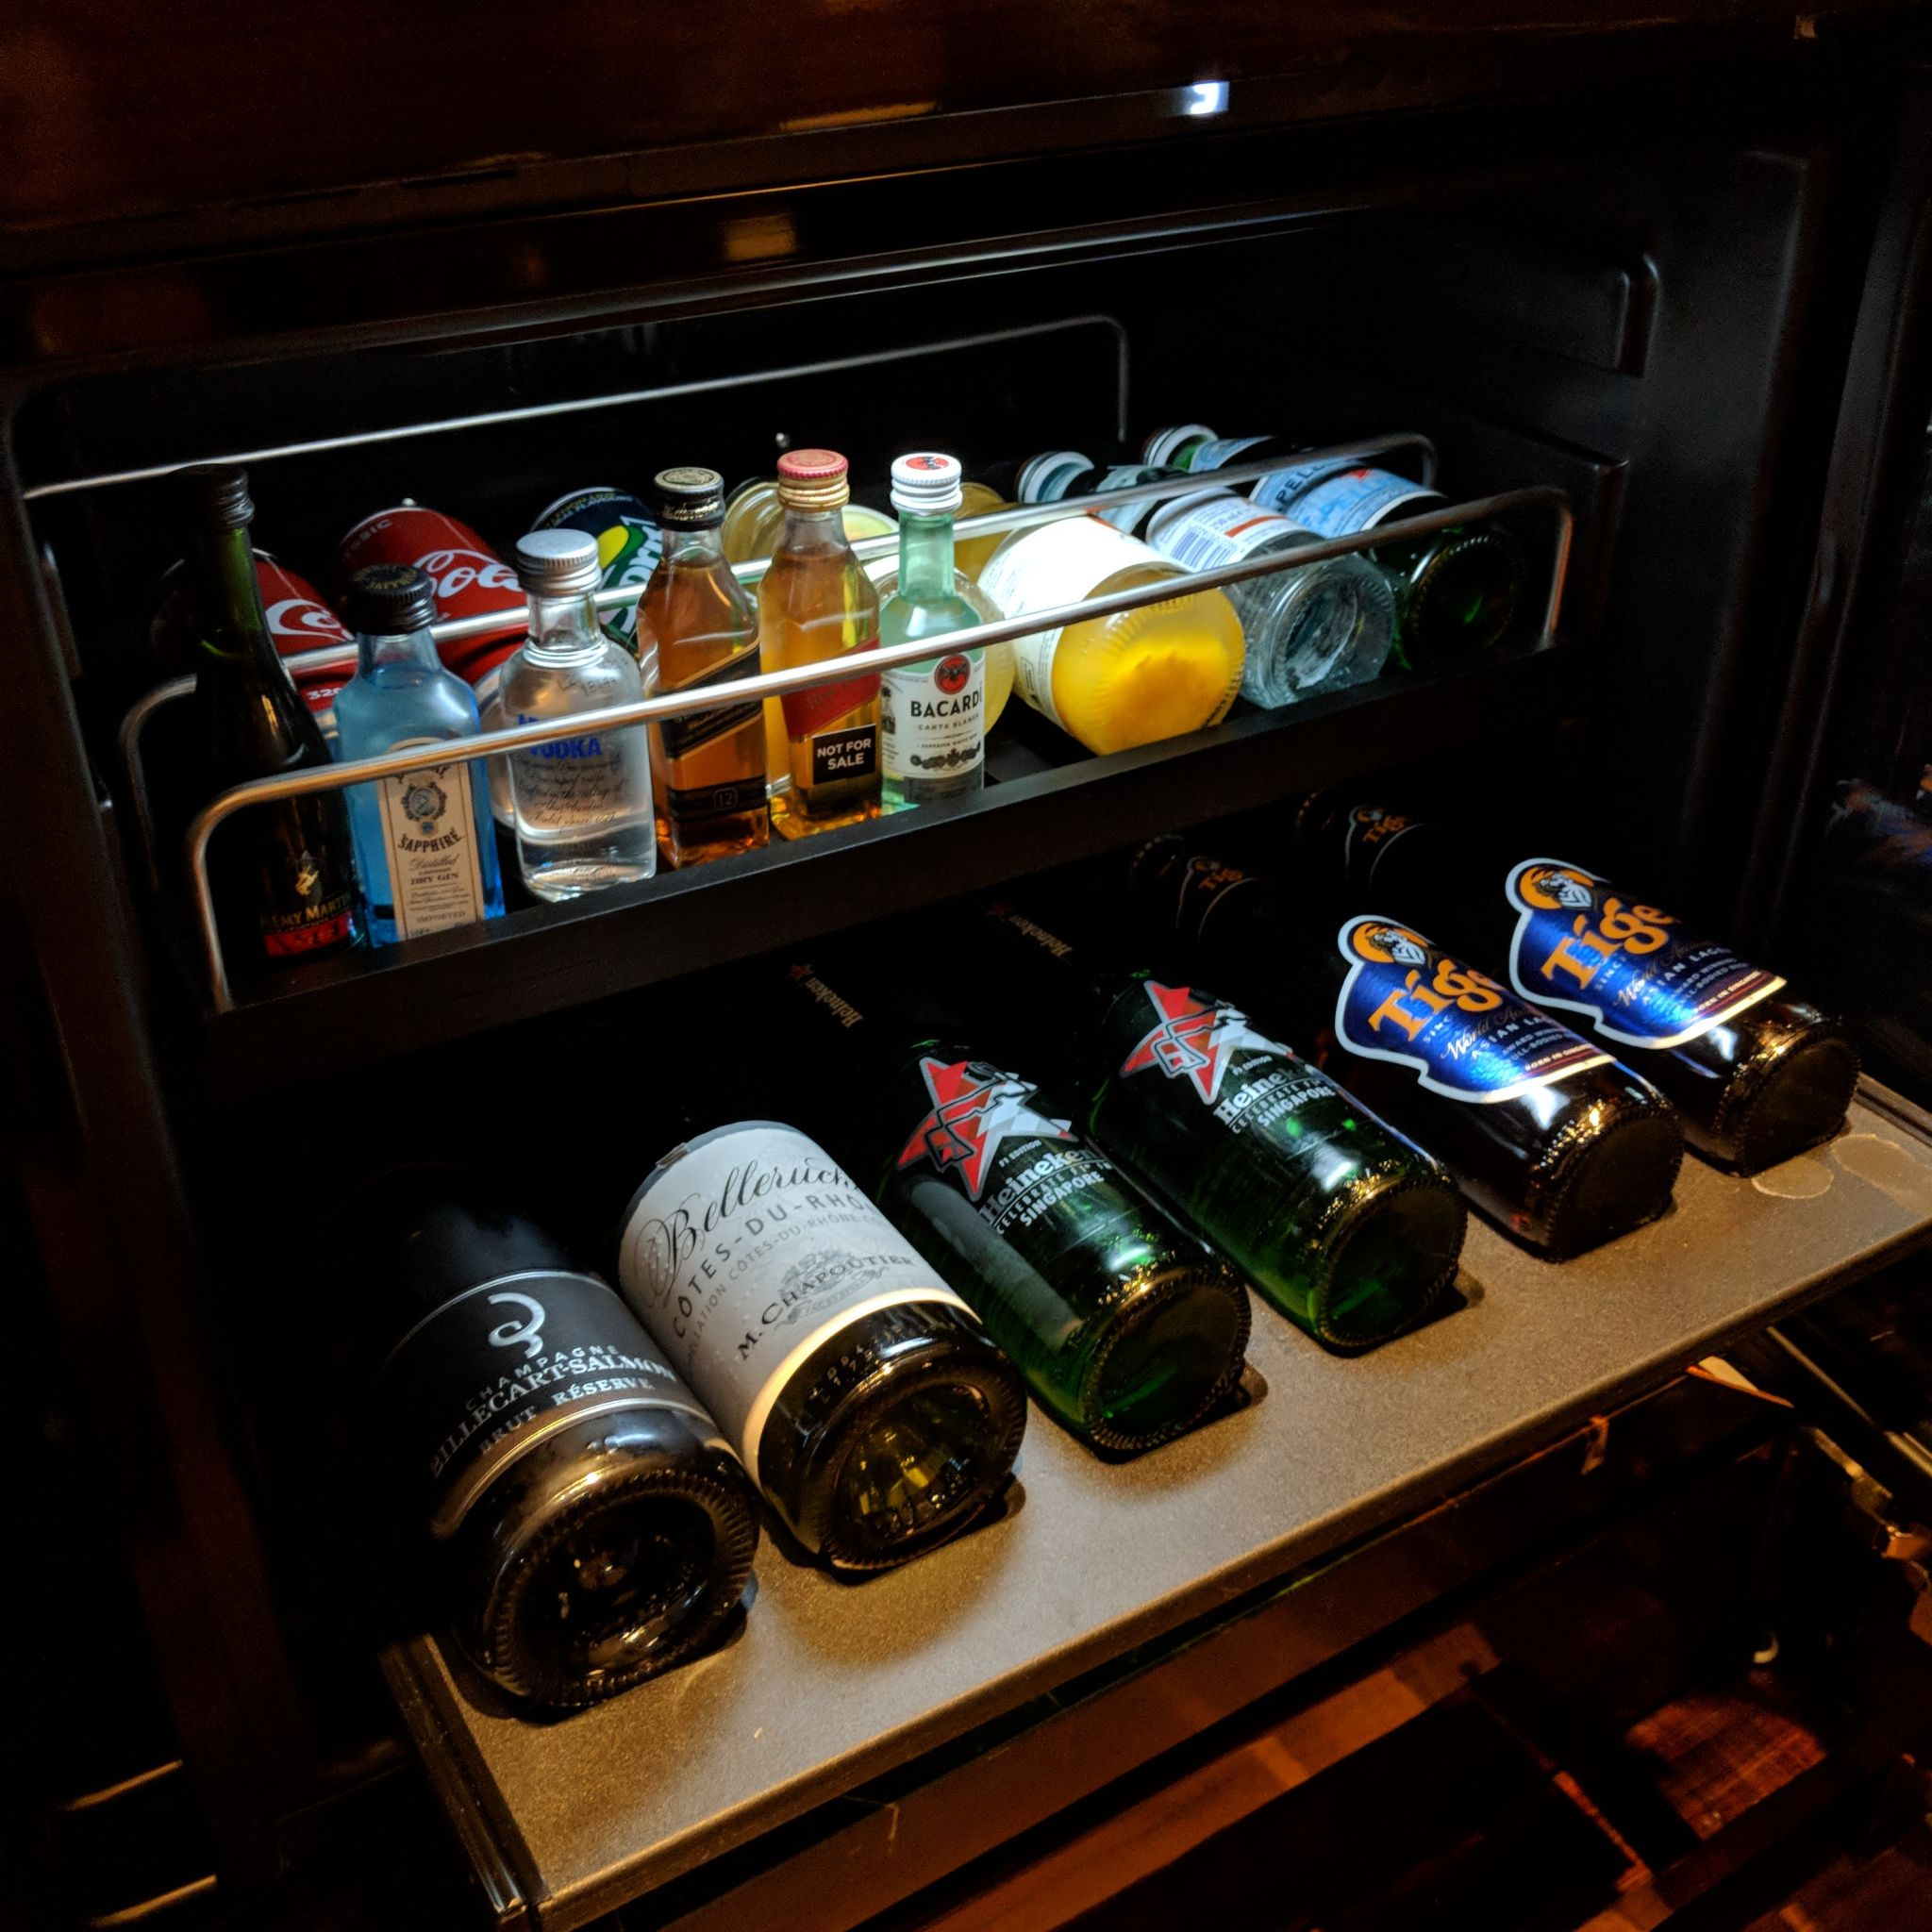 The Capitol Kempinski Hotel Singapore stamford suite mini bar